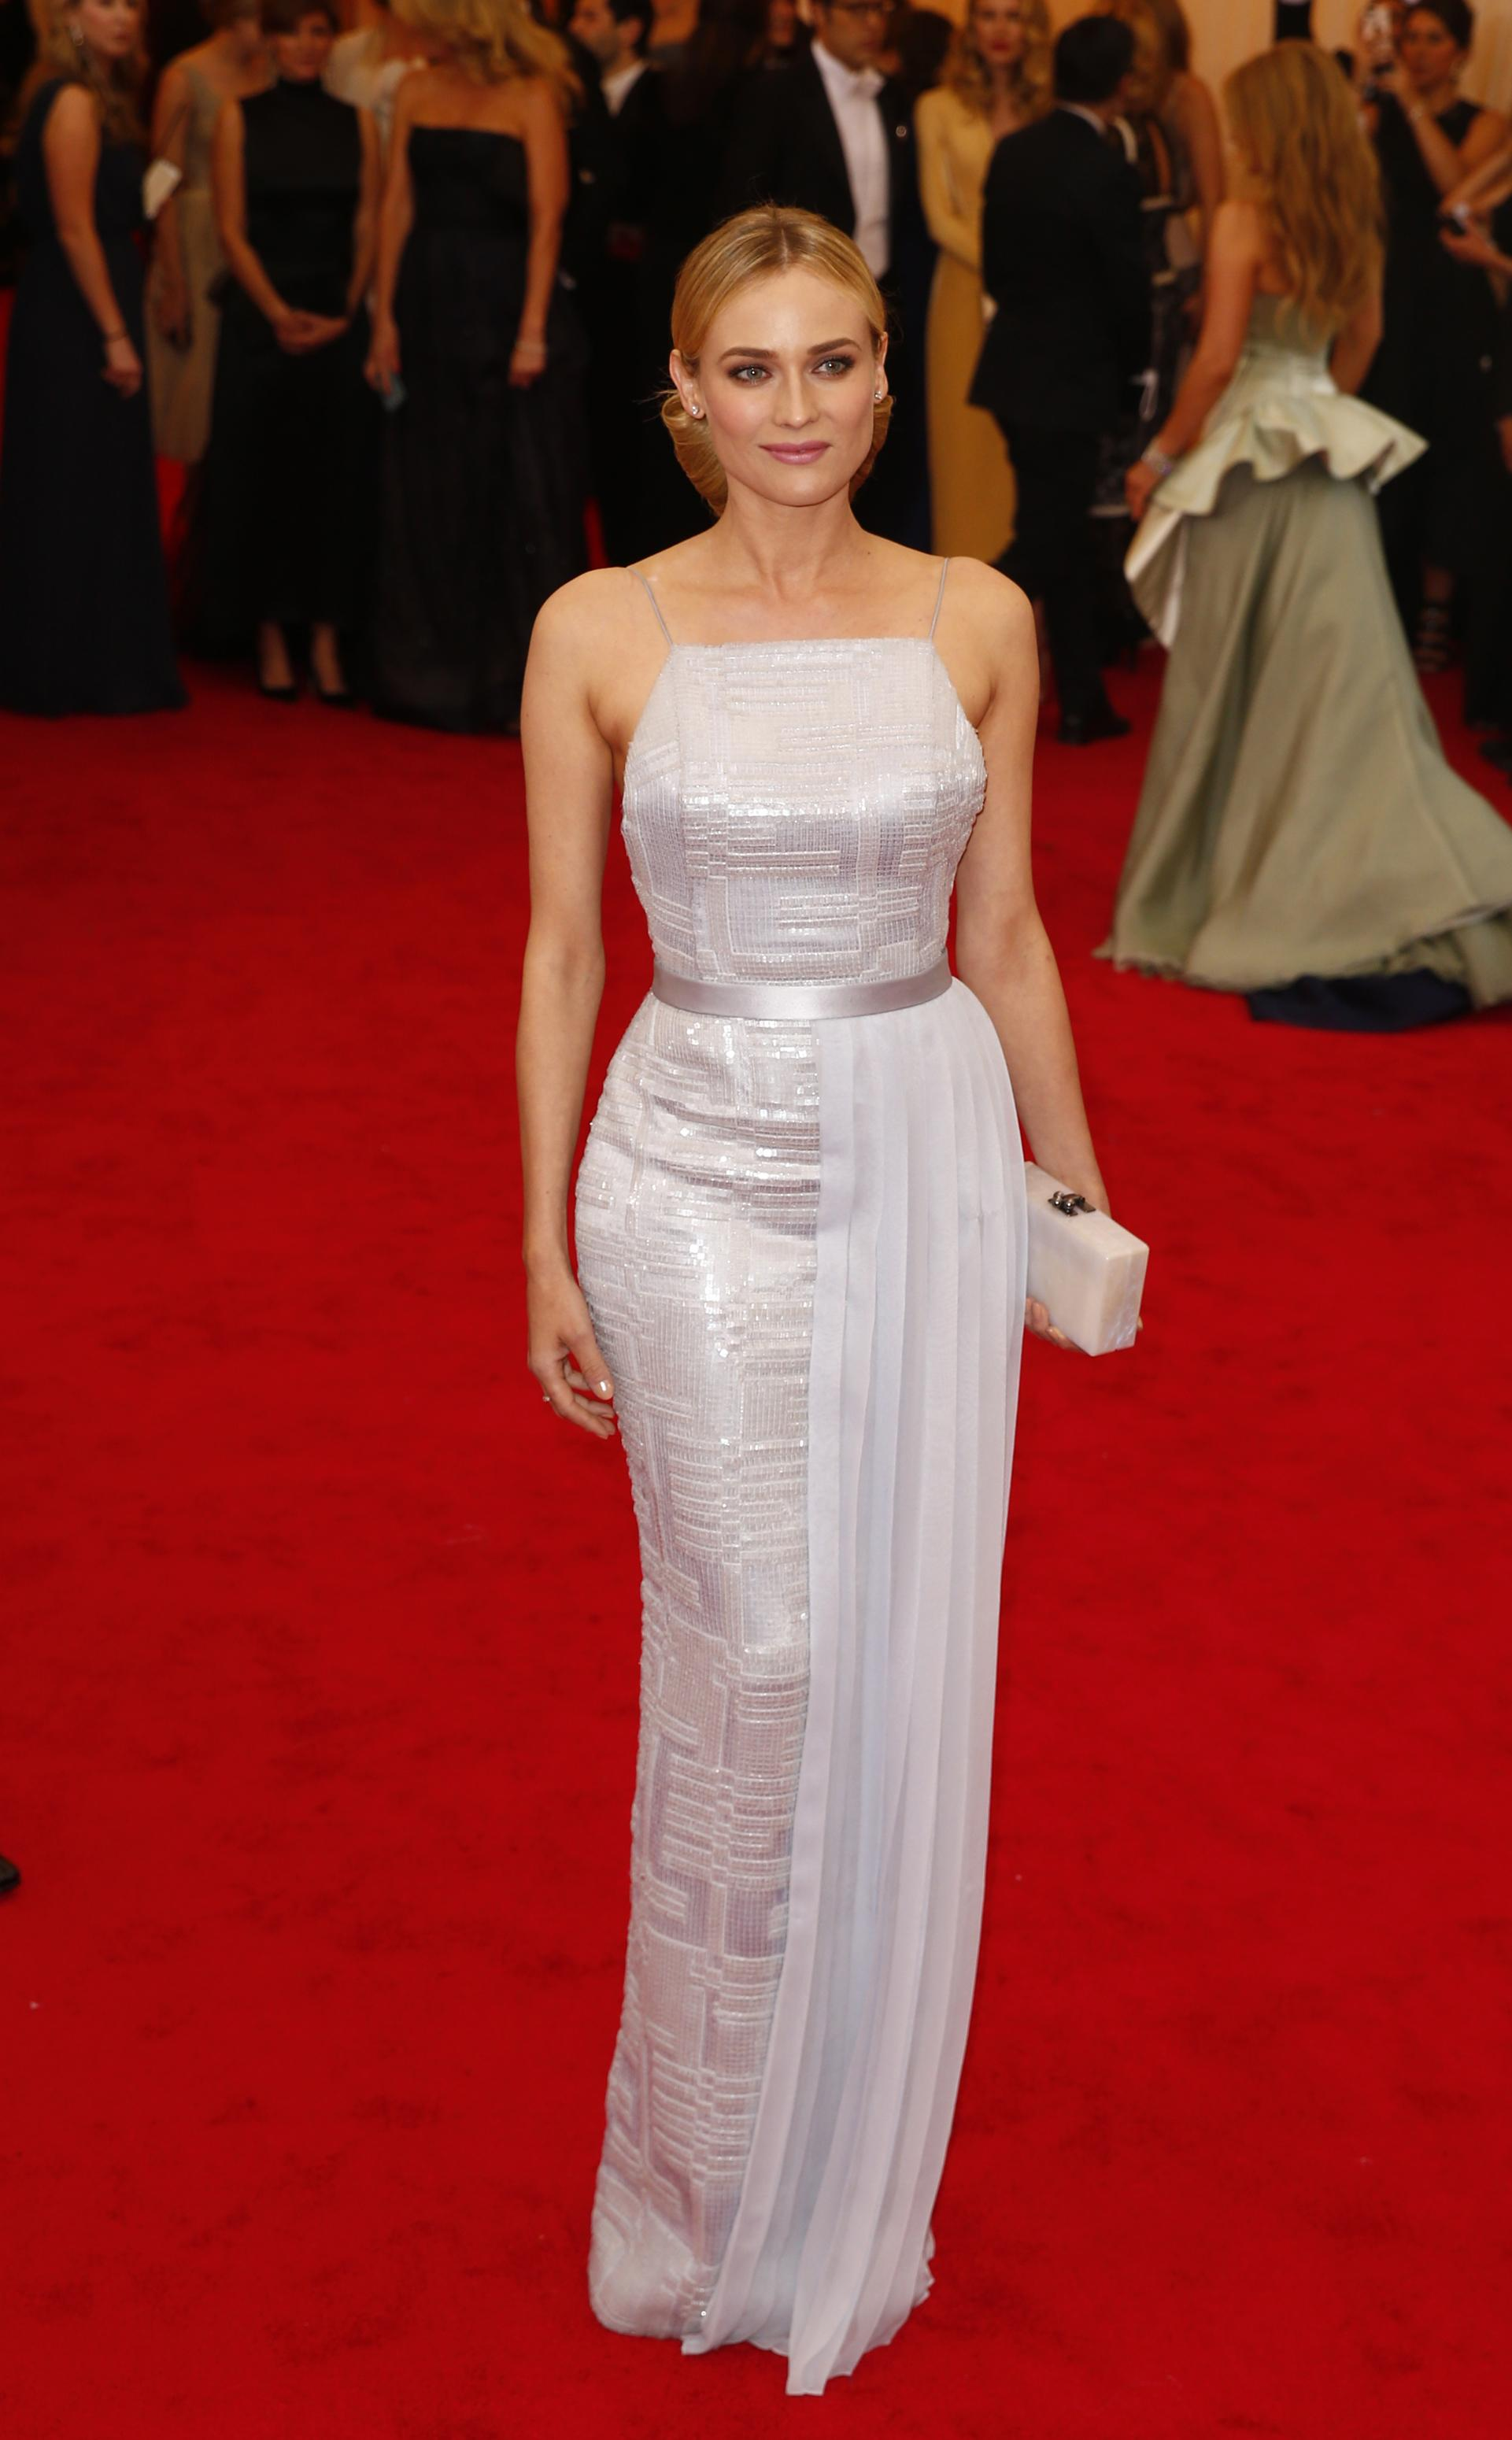 Met Gala 2014 Best And Worst Dressed On The Red Carpet